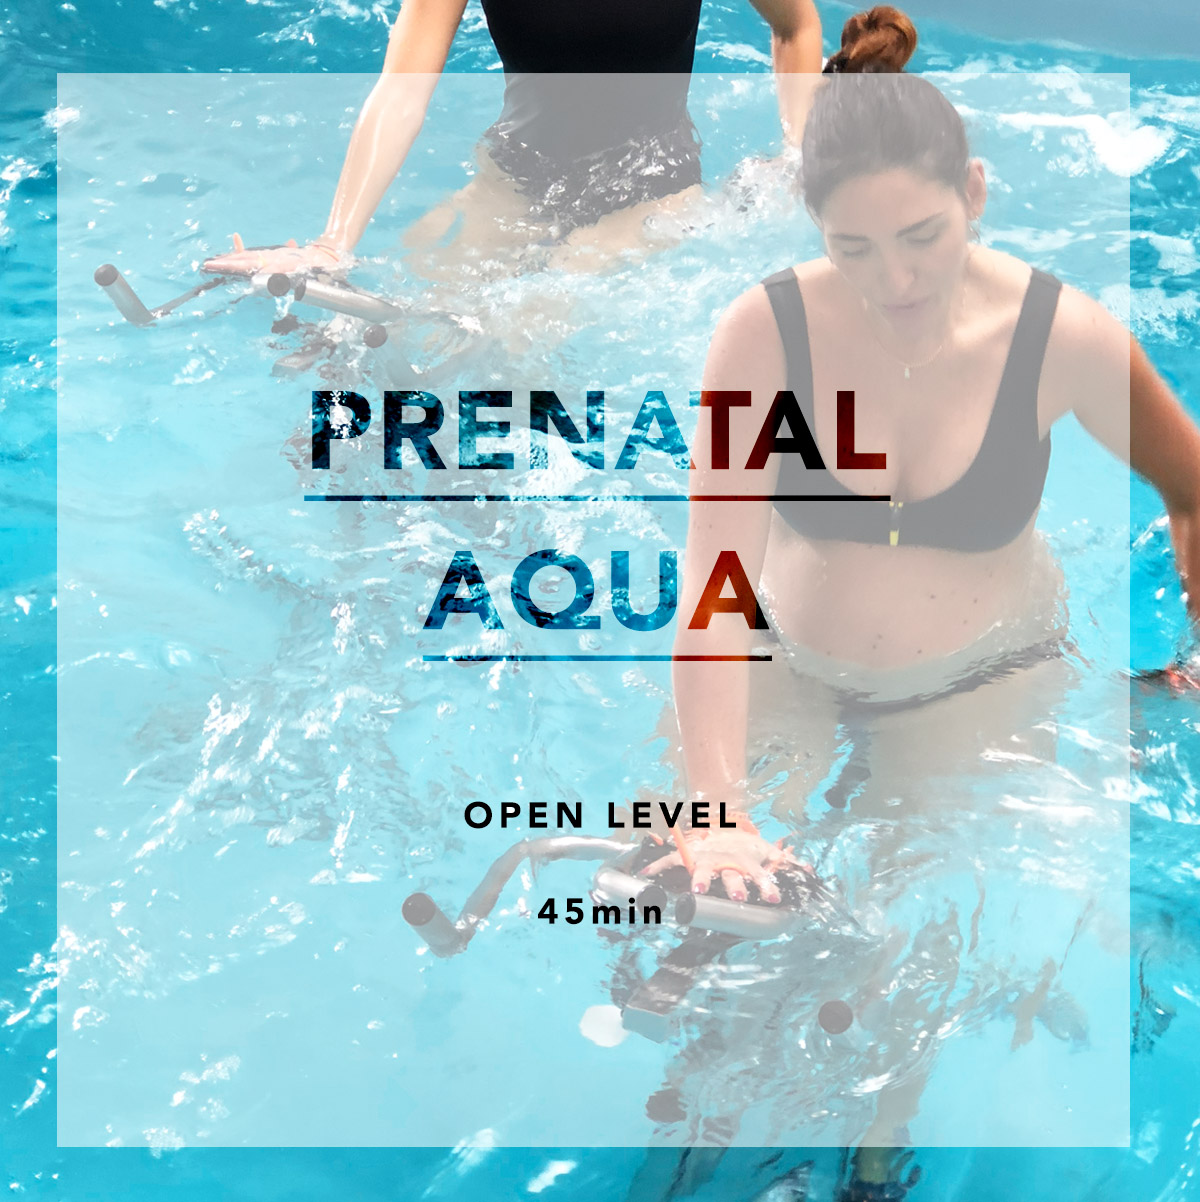 AQUACYCLING - All AQUA classes are open and safe to expecting moms. Feel free to book any of them and inform your trainer so they can provide modifications as needed. Check with your doctor before exercising._Expectant, hopeful expectant, and new moms welcome.